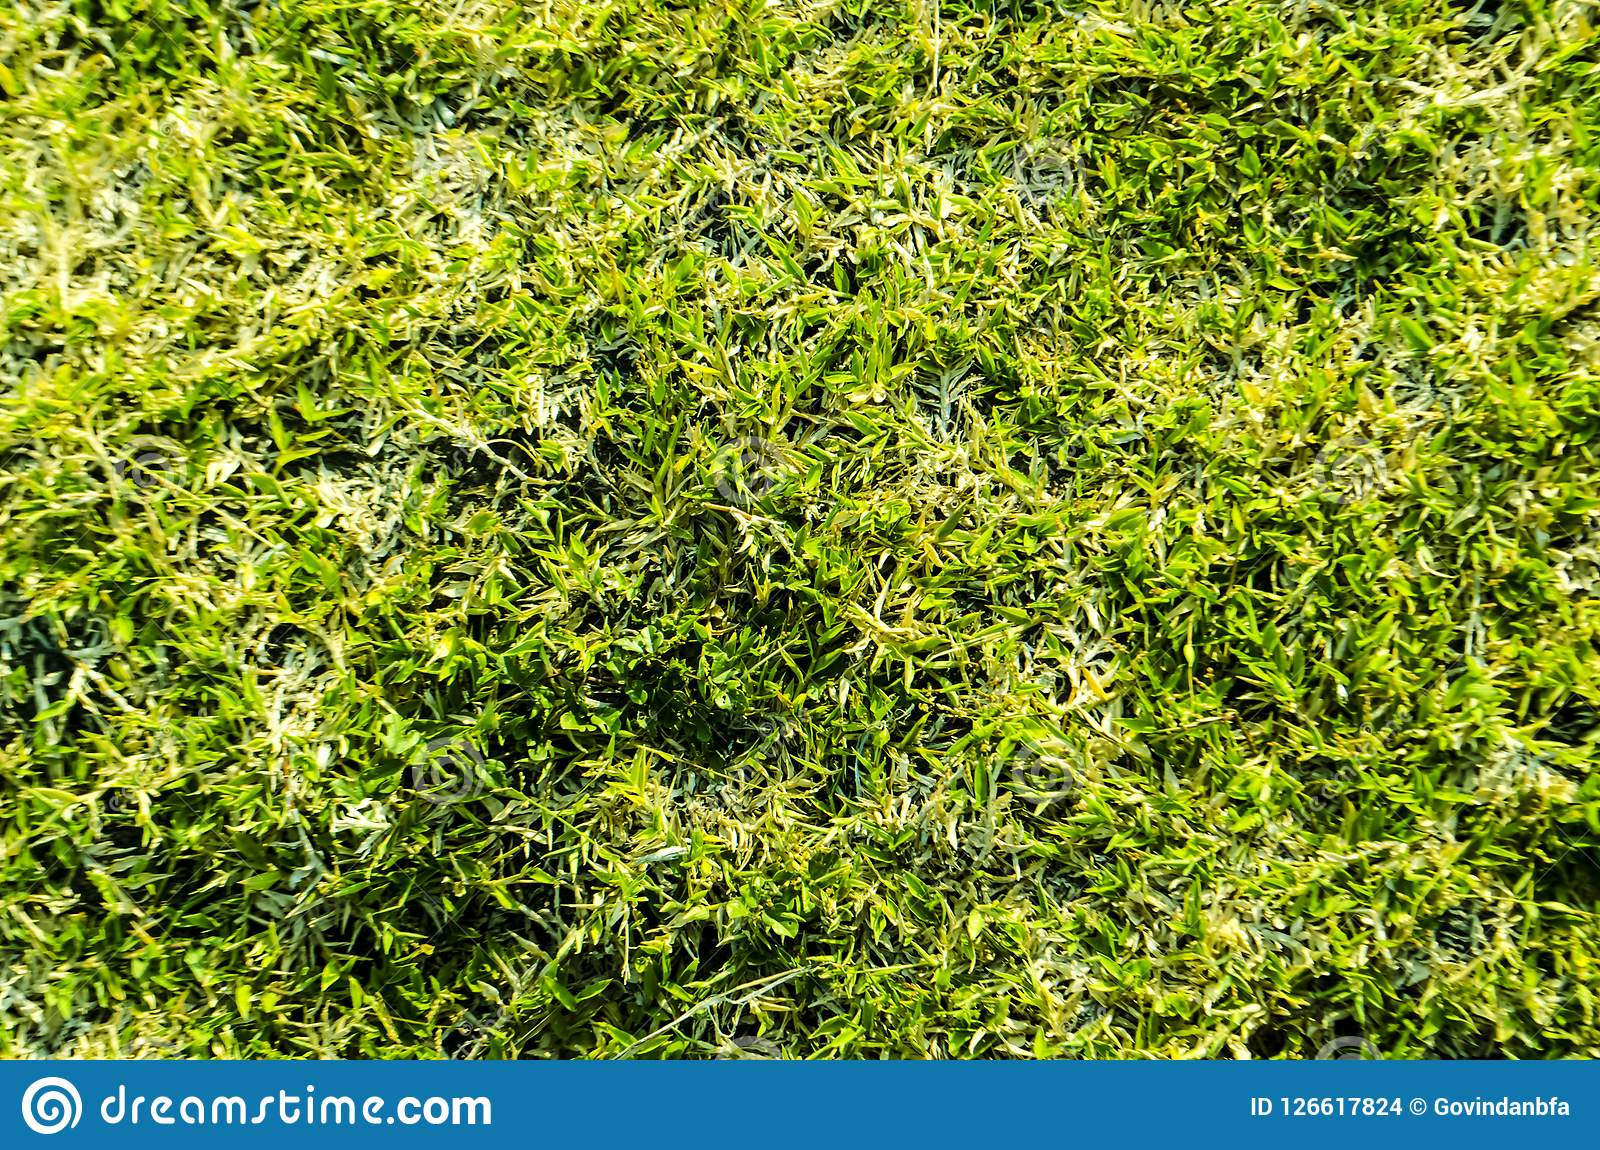 Green grass textured background and pattern from golf course